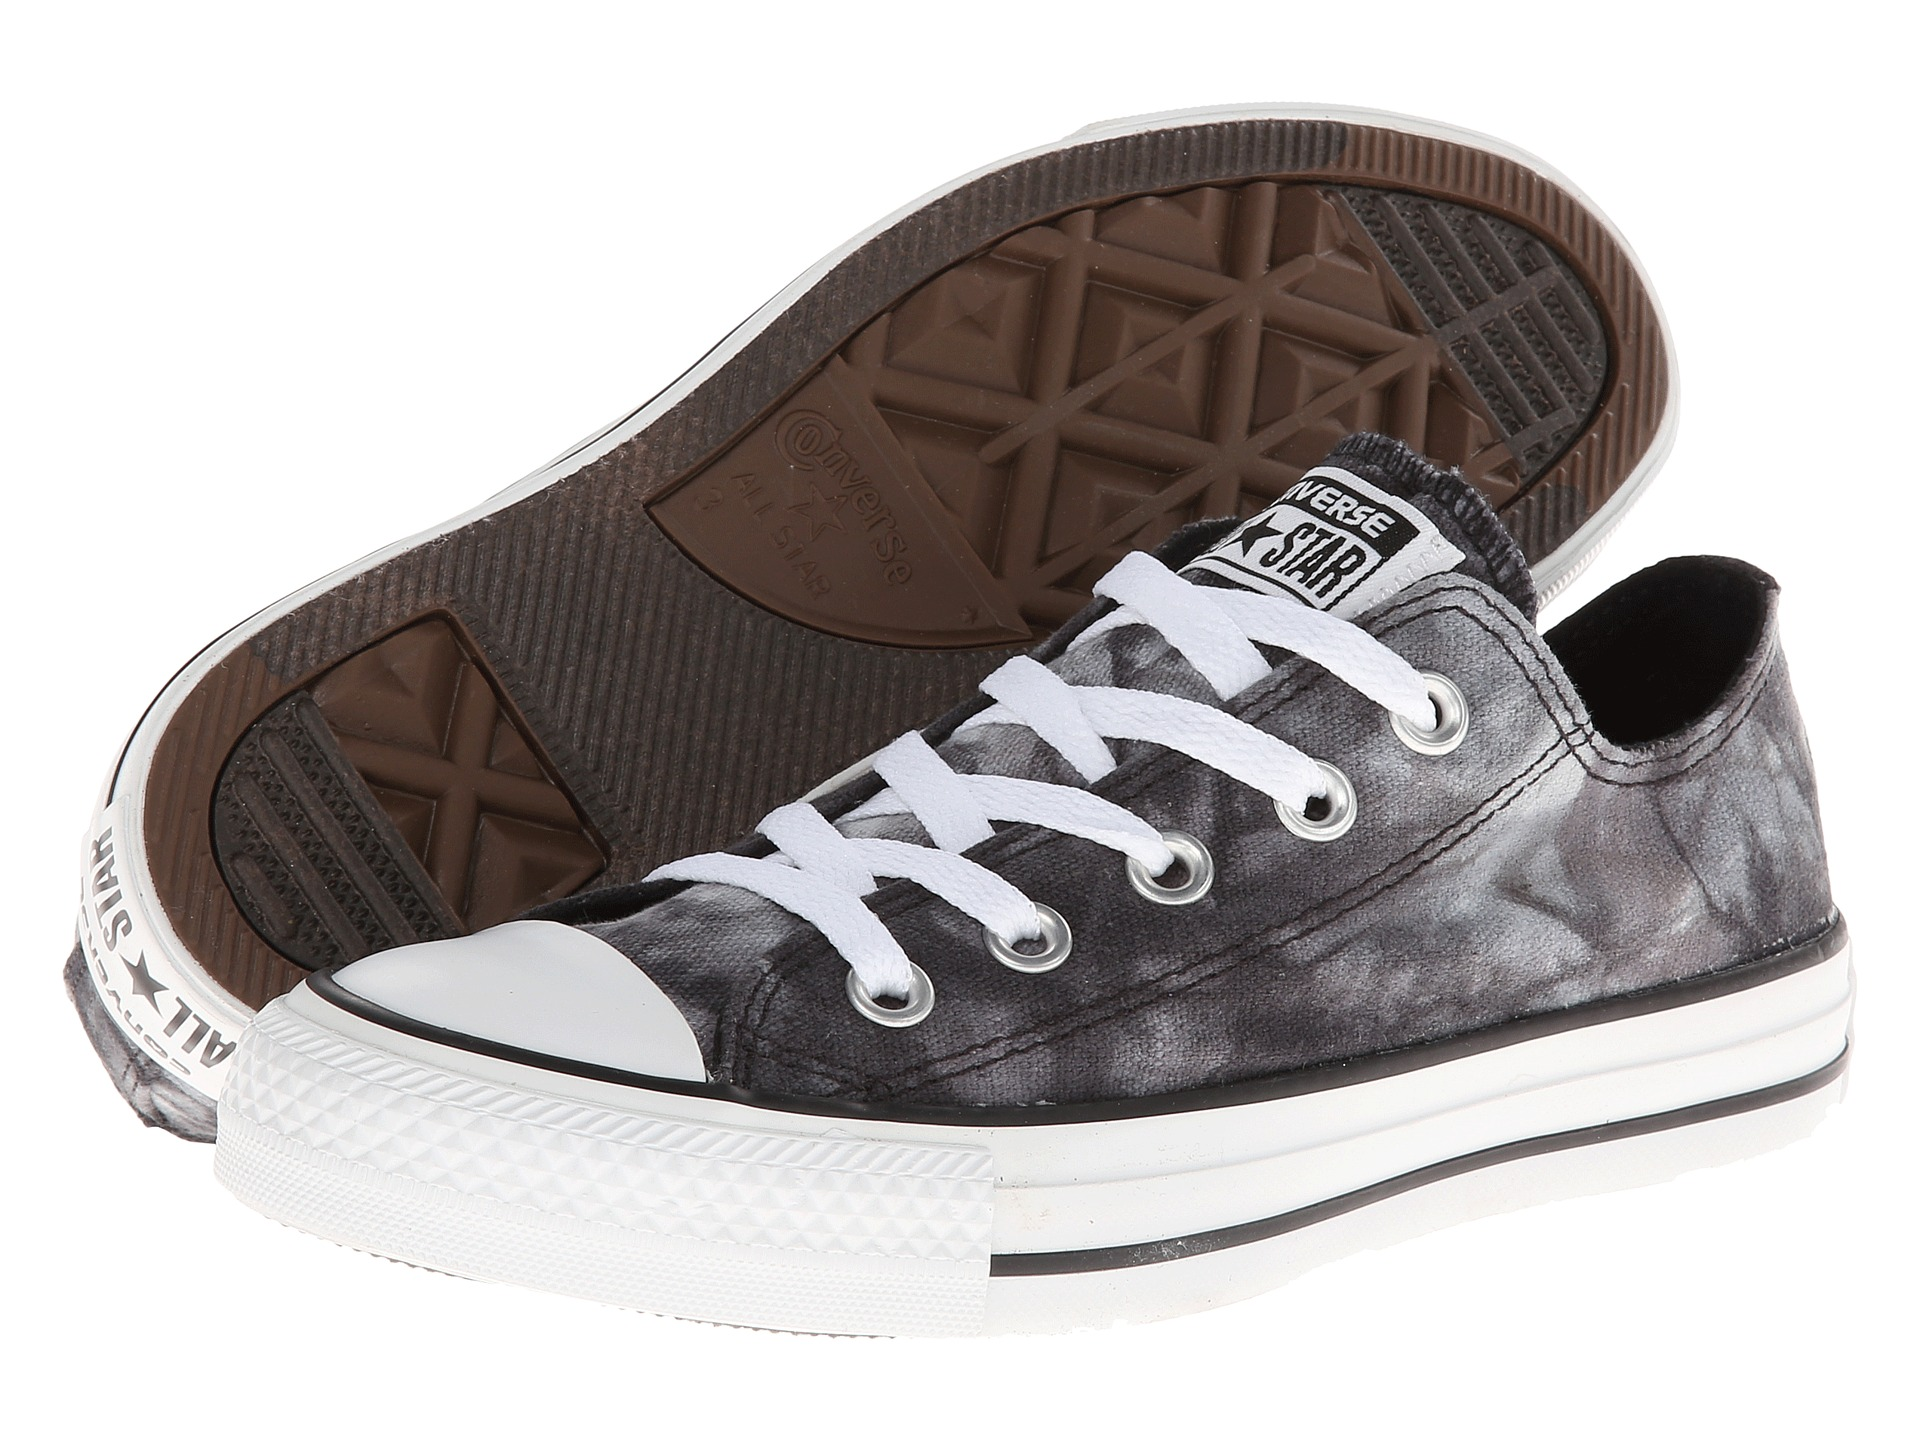 be6564cb3599 Converse Chuck Taylor All Star Tie Dye Ox